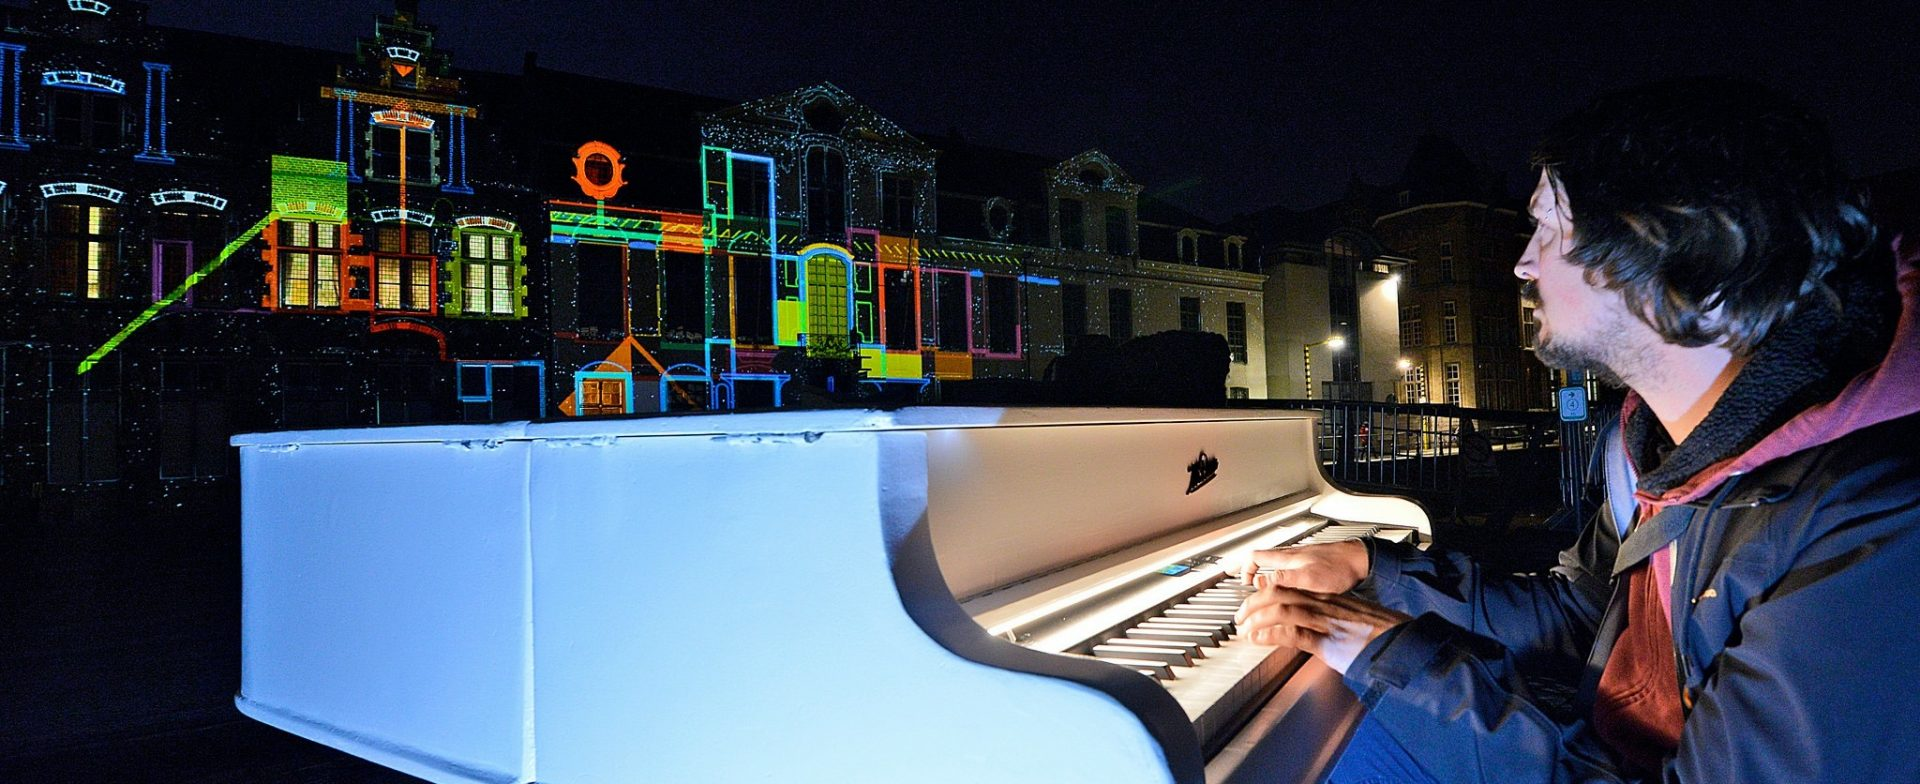 interactive projection mapping installation keys of light lichtfestival ghent